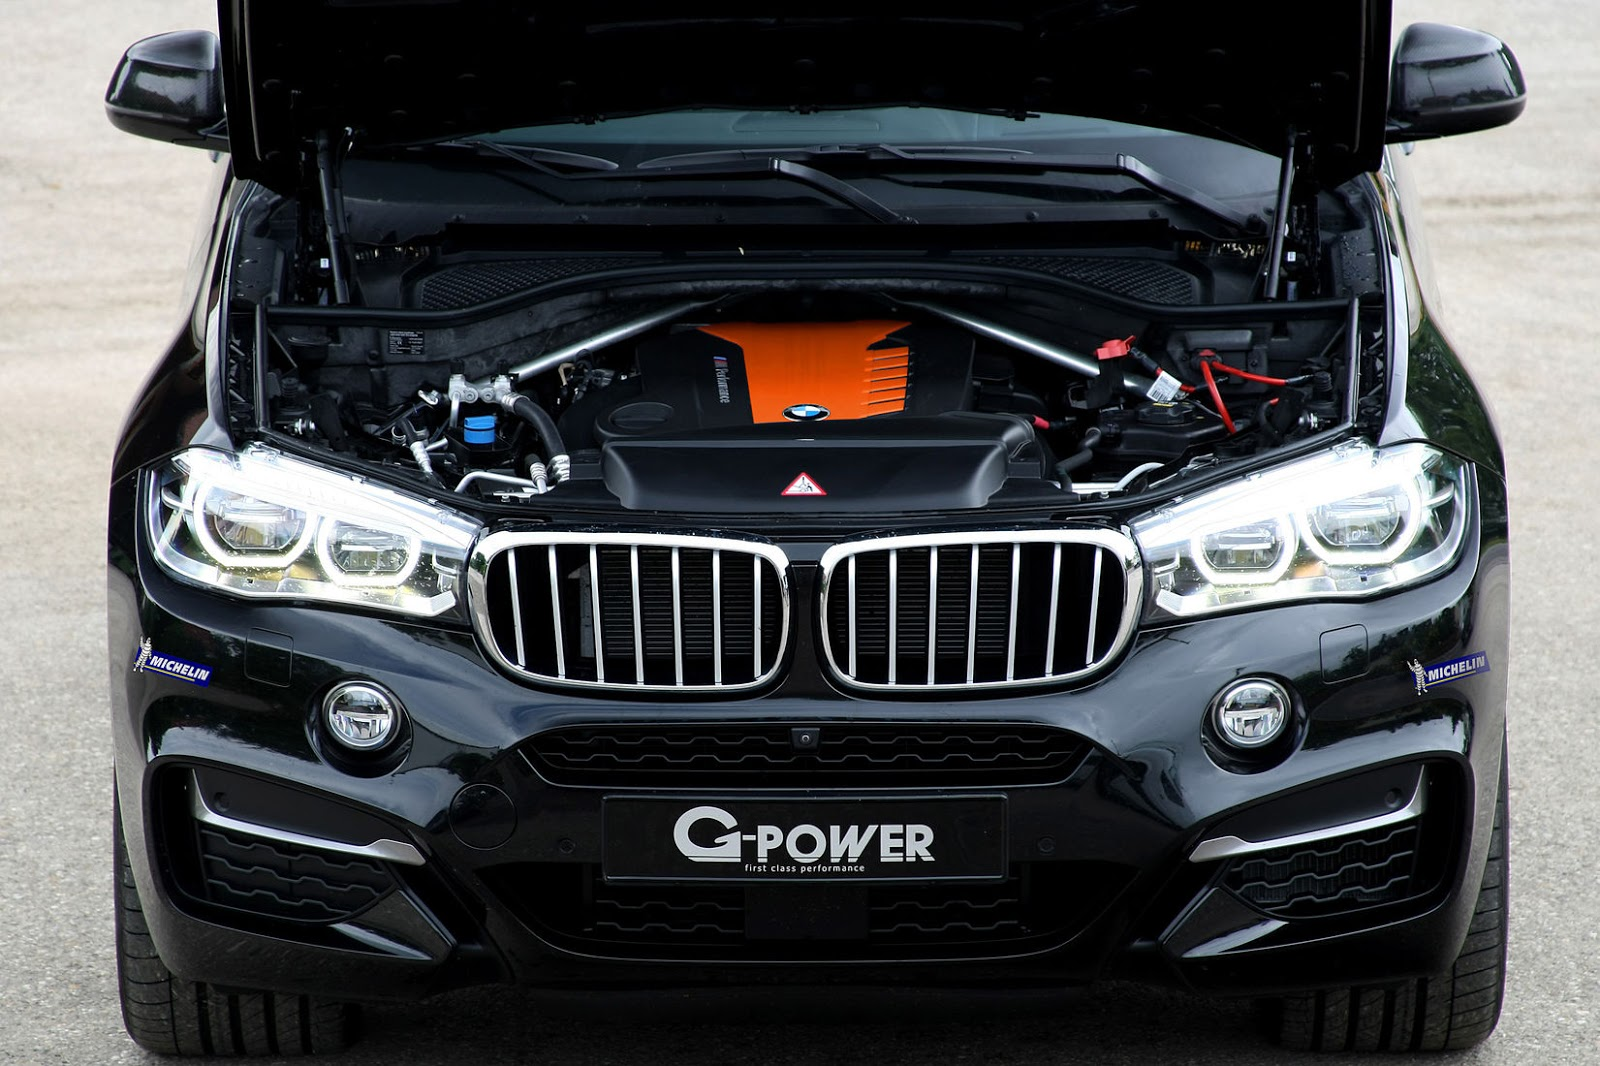 g power finds bmw x6 m50d 39 s sweet spot with 455 diesel fueled horses carscoops. Black Bedroom Furniture Sets. Home Design Ideas